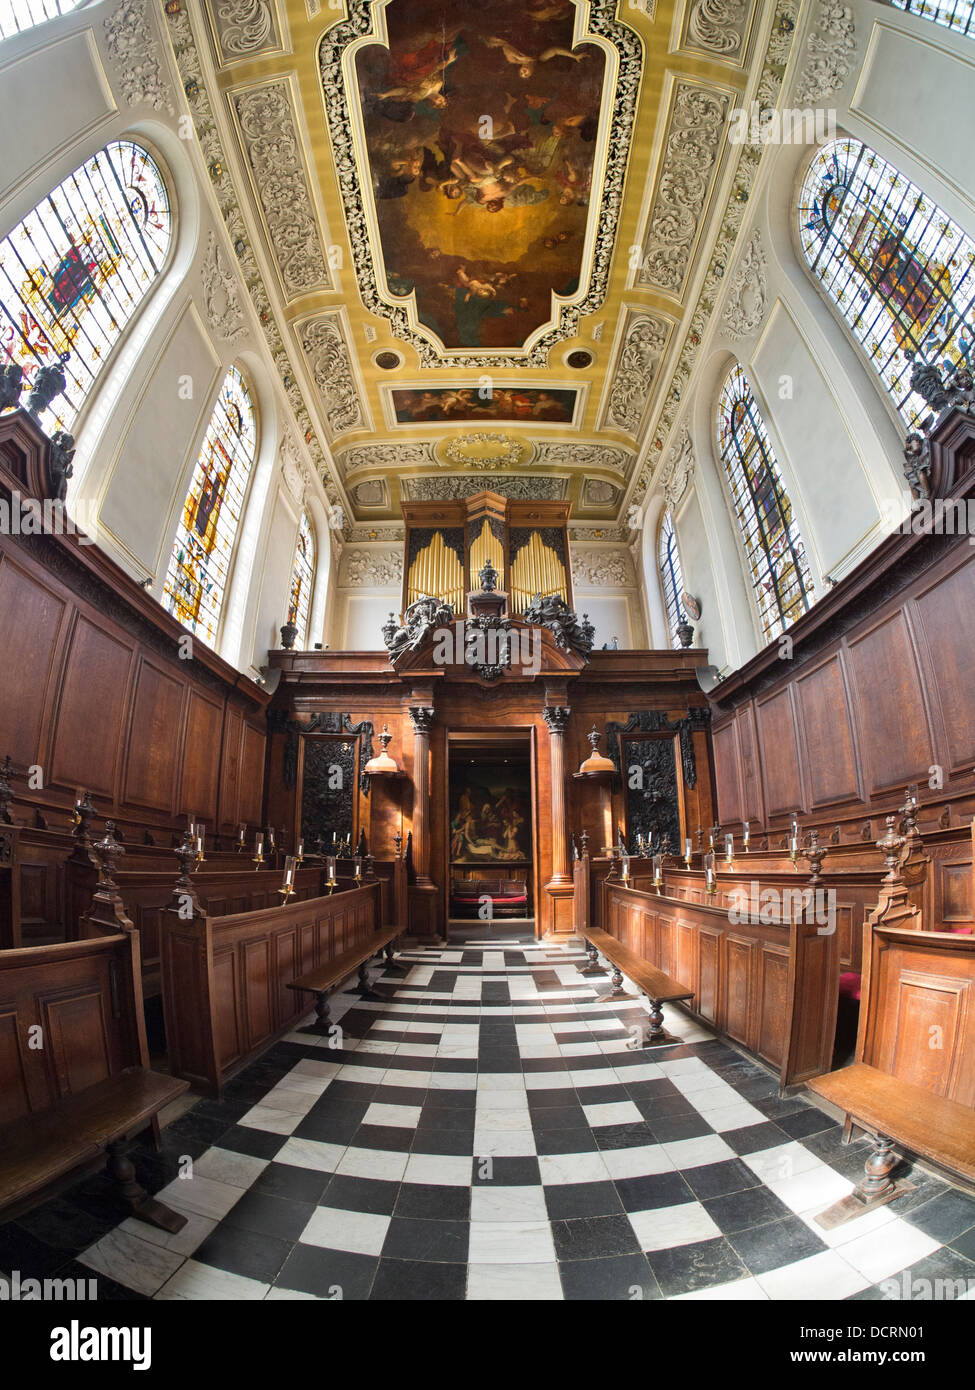 The Chapel of Trinity College, Oxford - fisheye view 5 - Stock Image